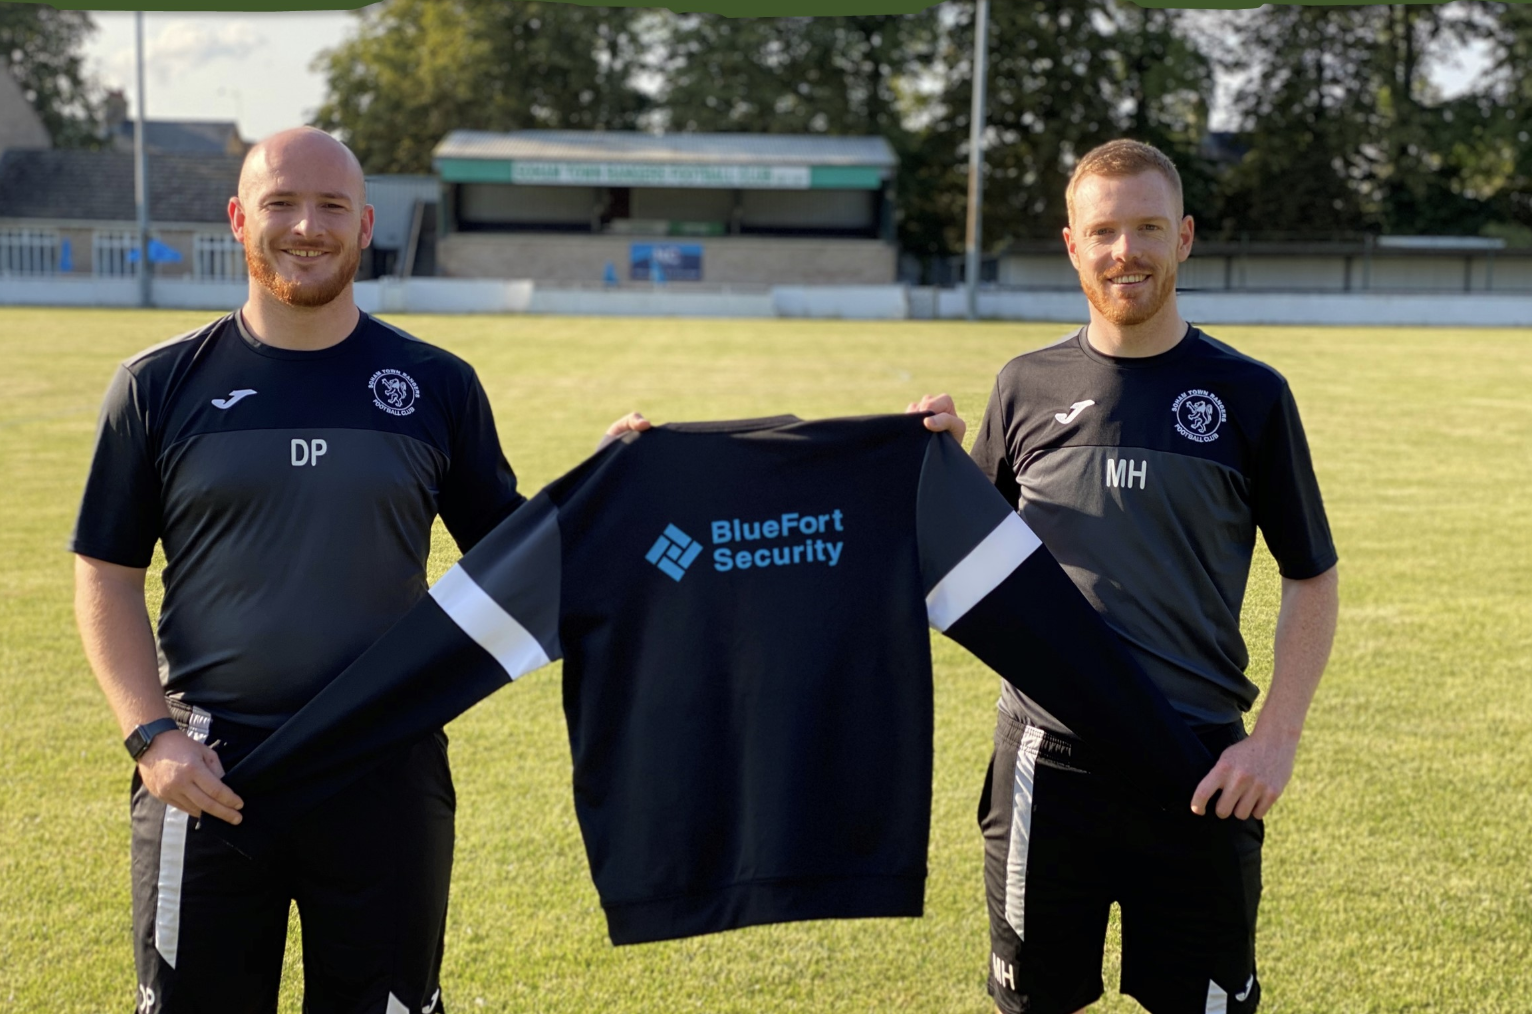 Left to Right  Dan Pratt, STRR Club Manager and Michael Harvey, STRR Head Coach with one of their new training shirts